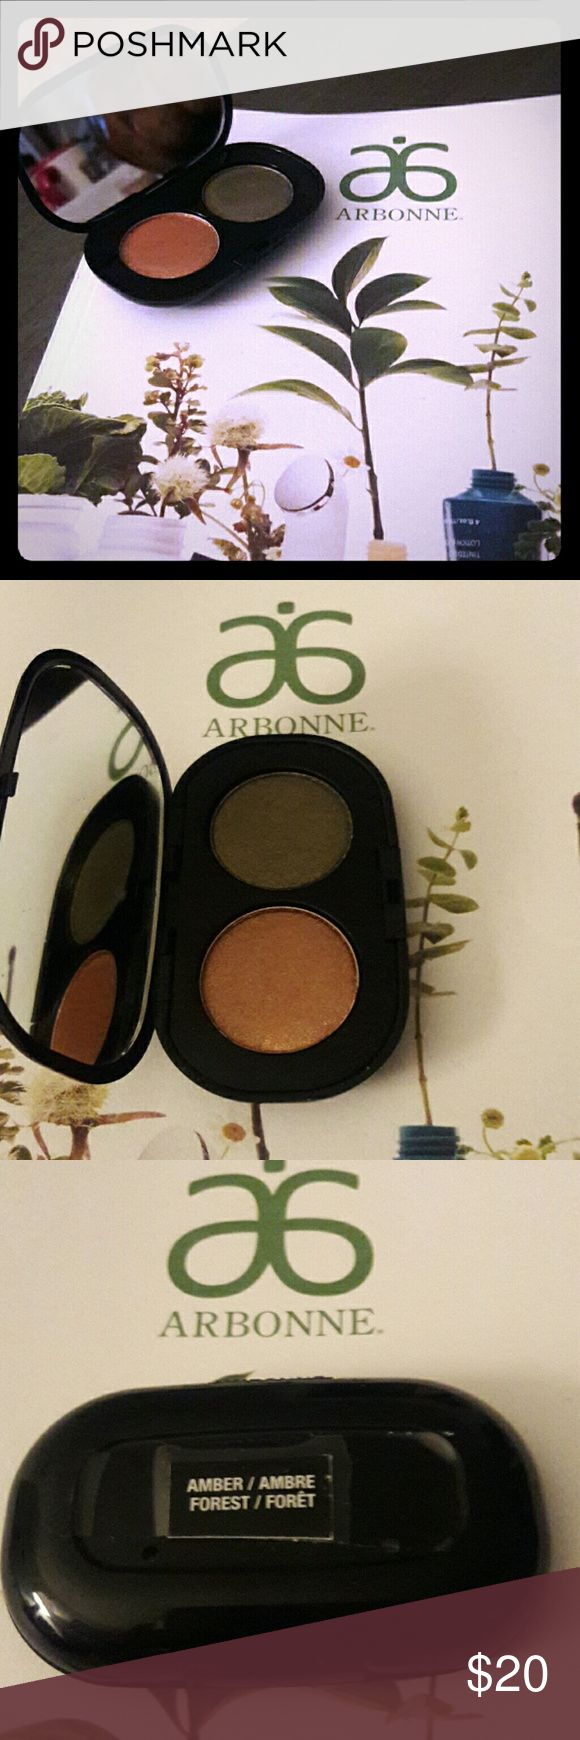 """NEW Arbonne """"It's all in the Eyes"""" Eye Shadow Duo New Arbonne eye shadow, colors Amber/Forest #6720.  Refillable and interchangeable. Net weight 0.14 oz. Retails at $40. Arbonne Other"""